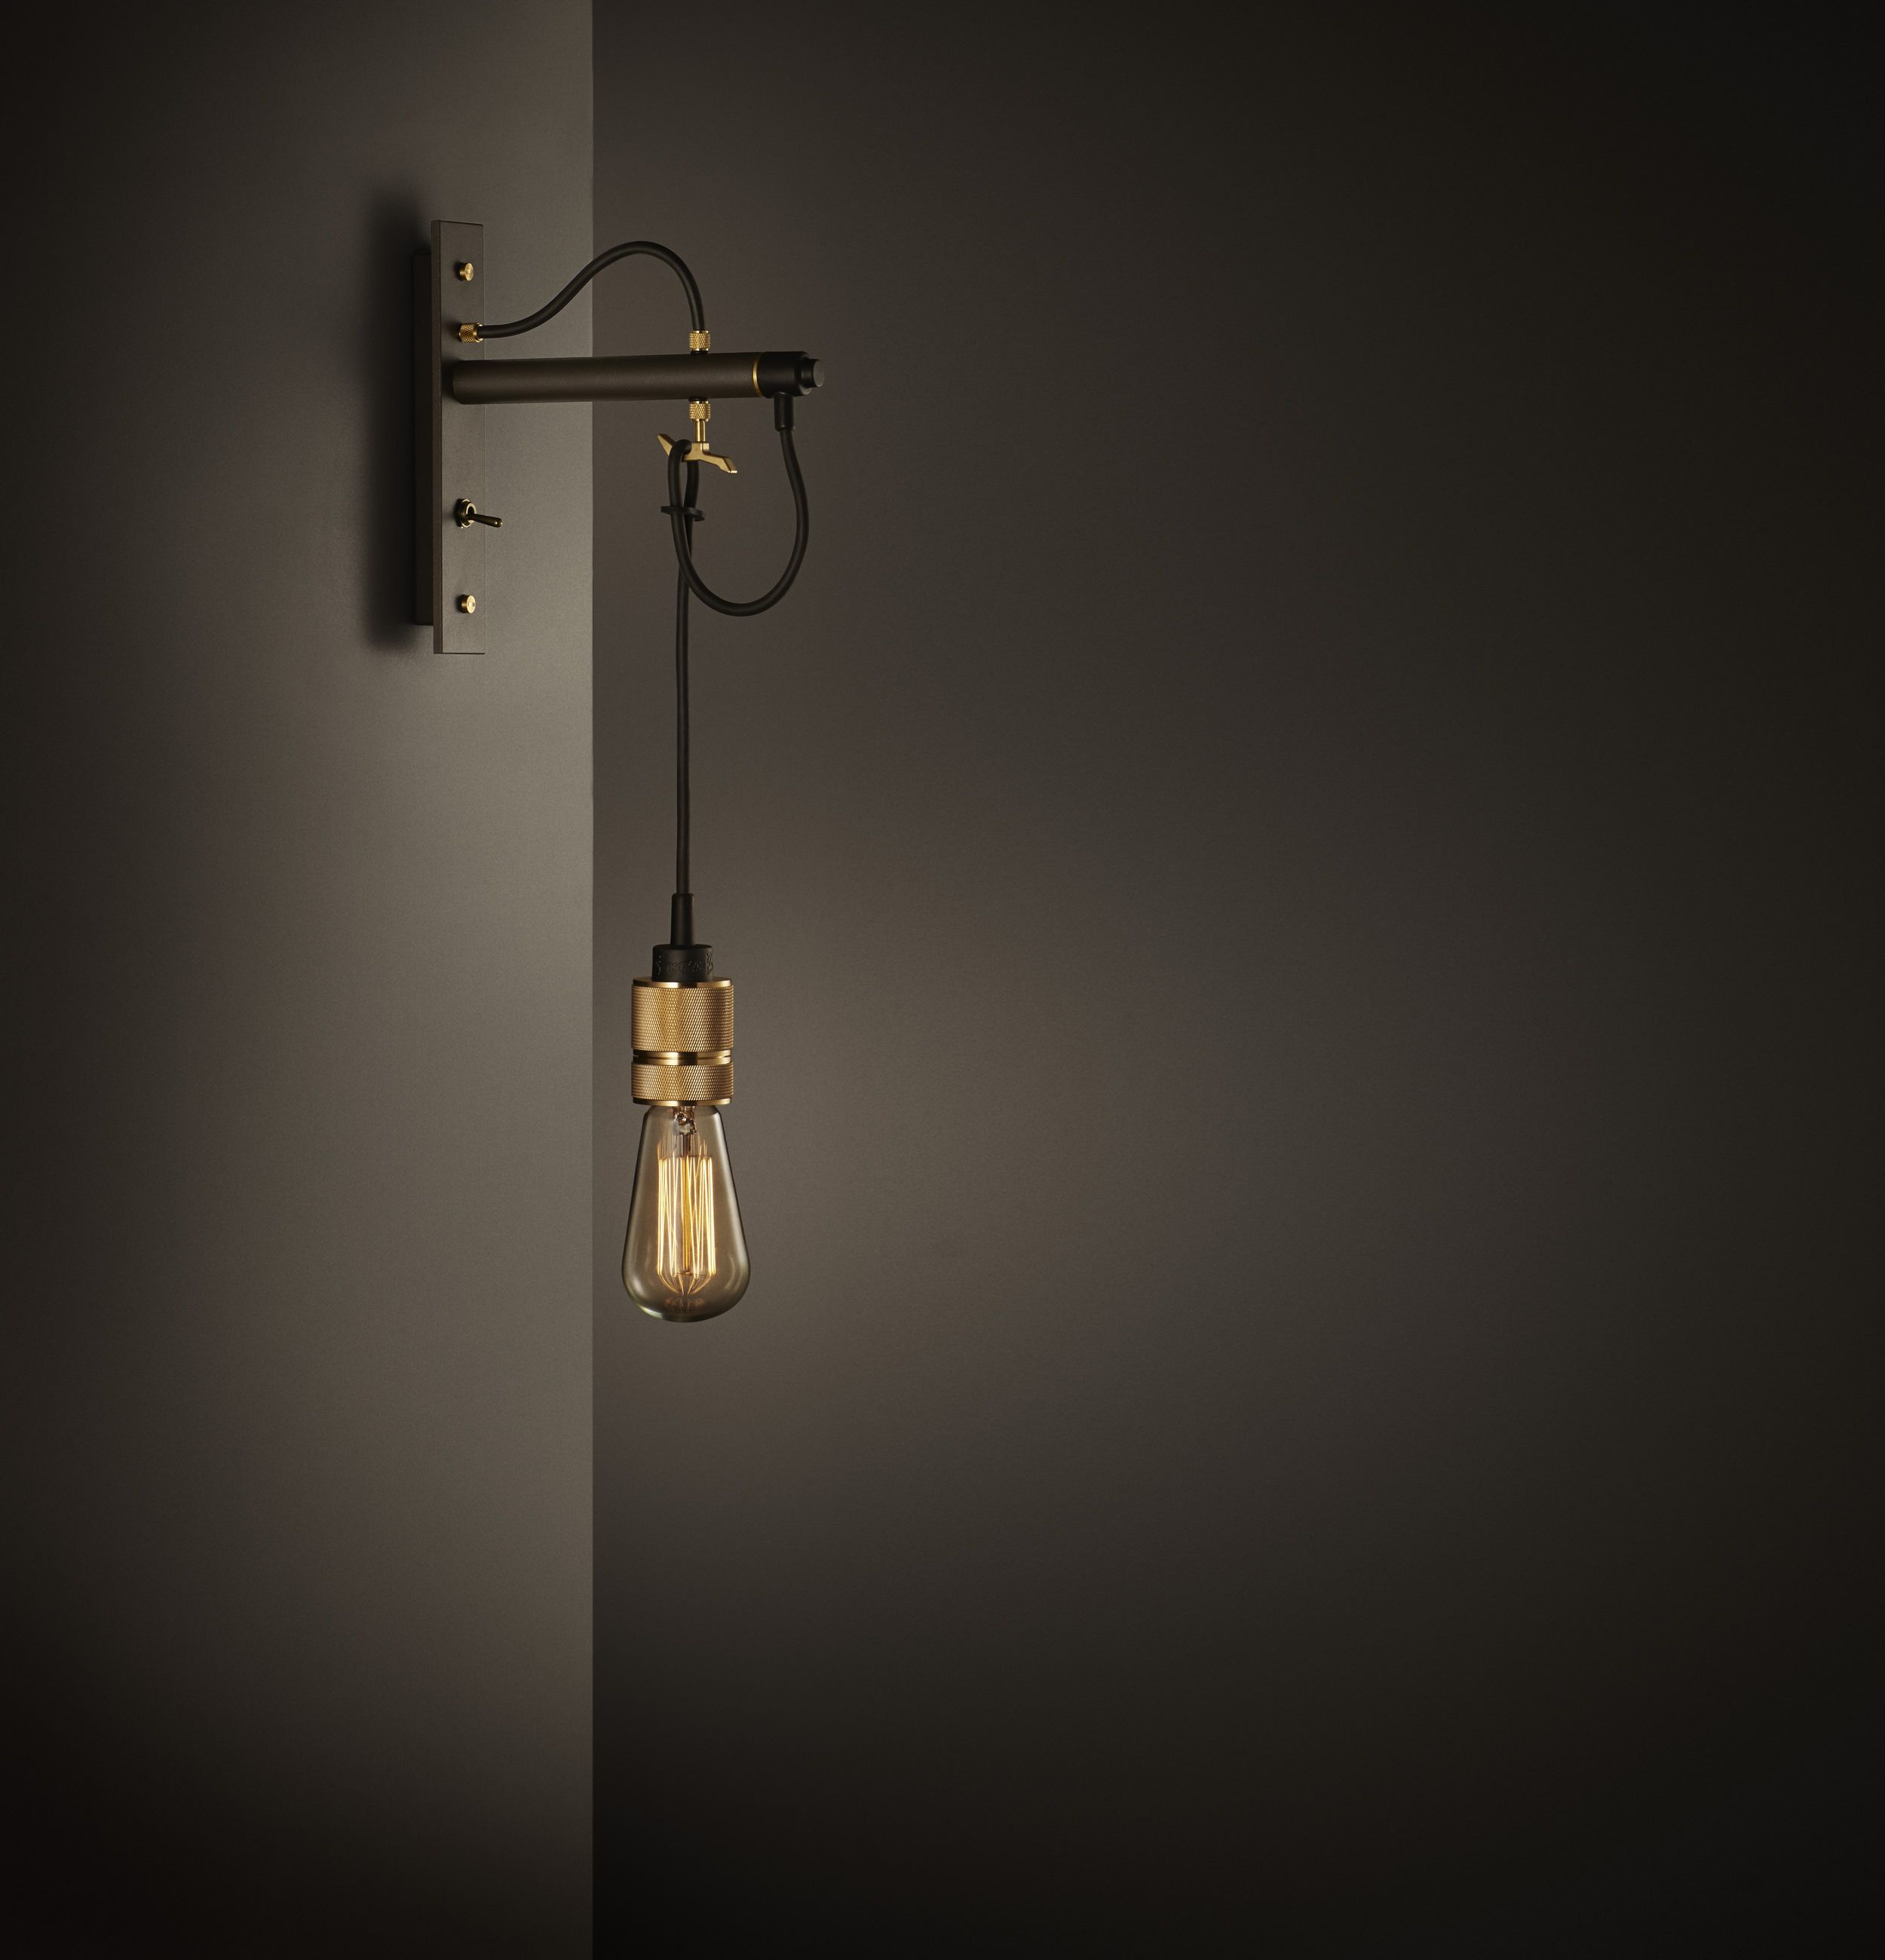 Hooked wall with LED bulb. Wall lamp with LED bulb. Væglampe med LED pære.